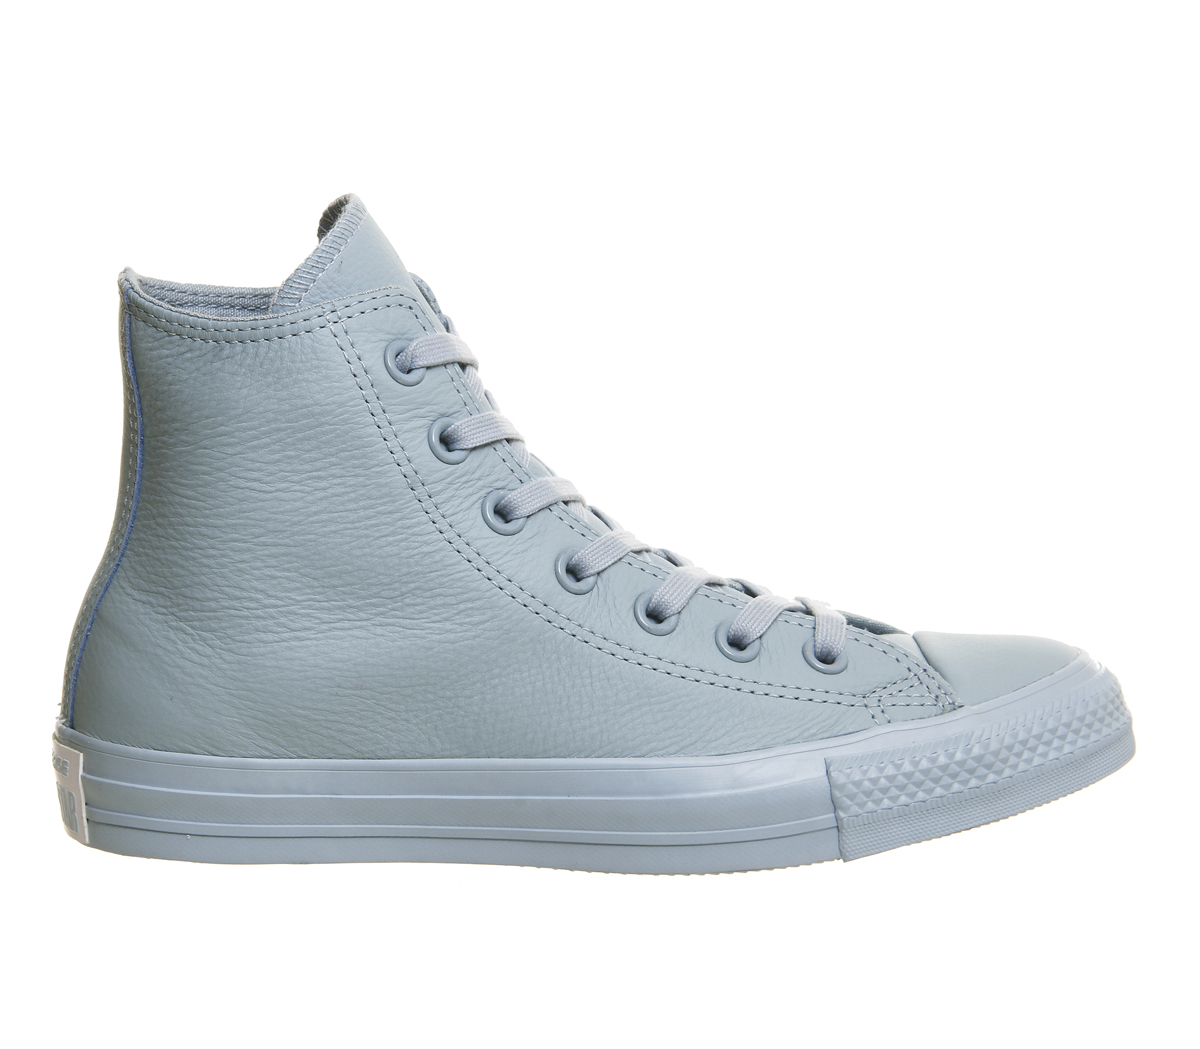 converse all star hi leather in gray lyst